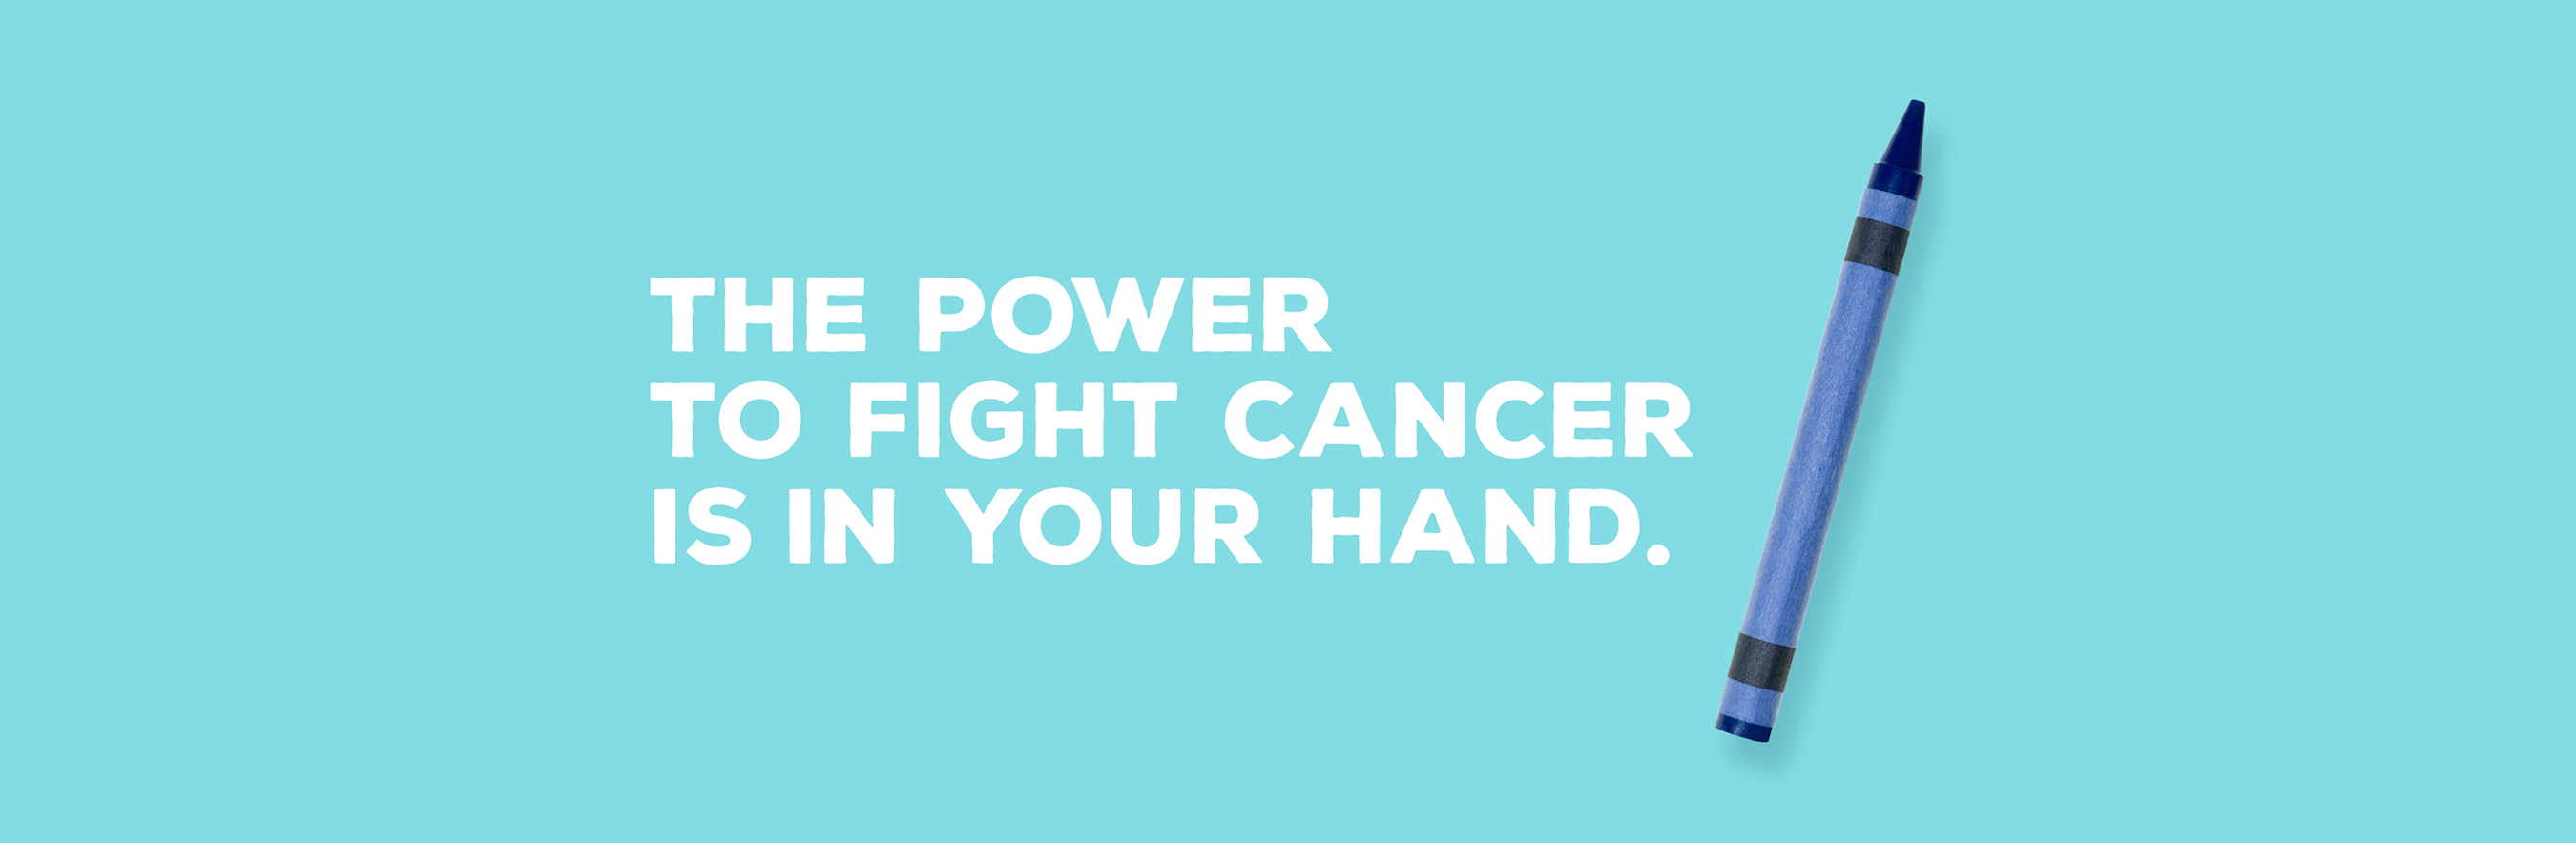 The Power to Fight Cancer is in Your Hand